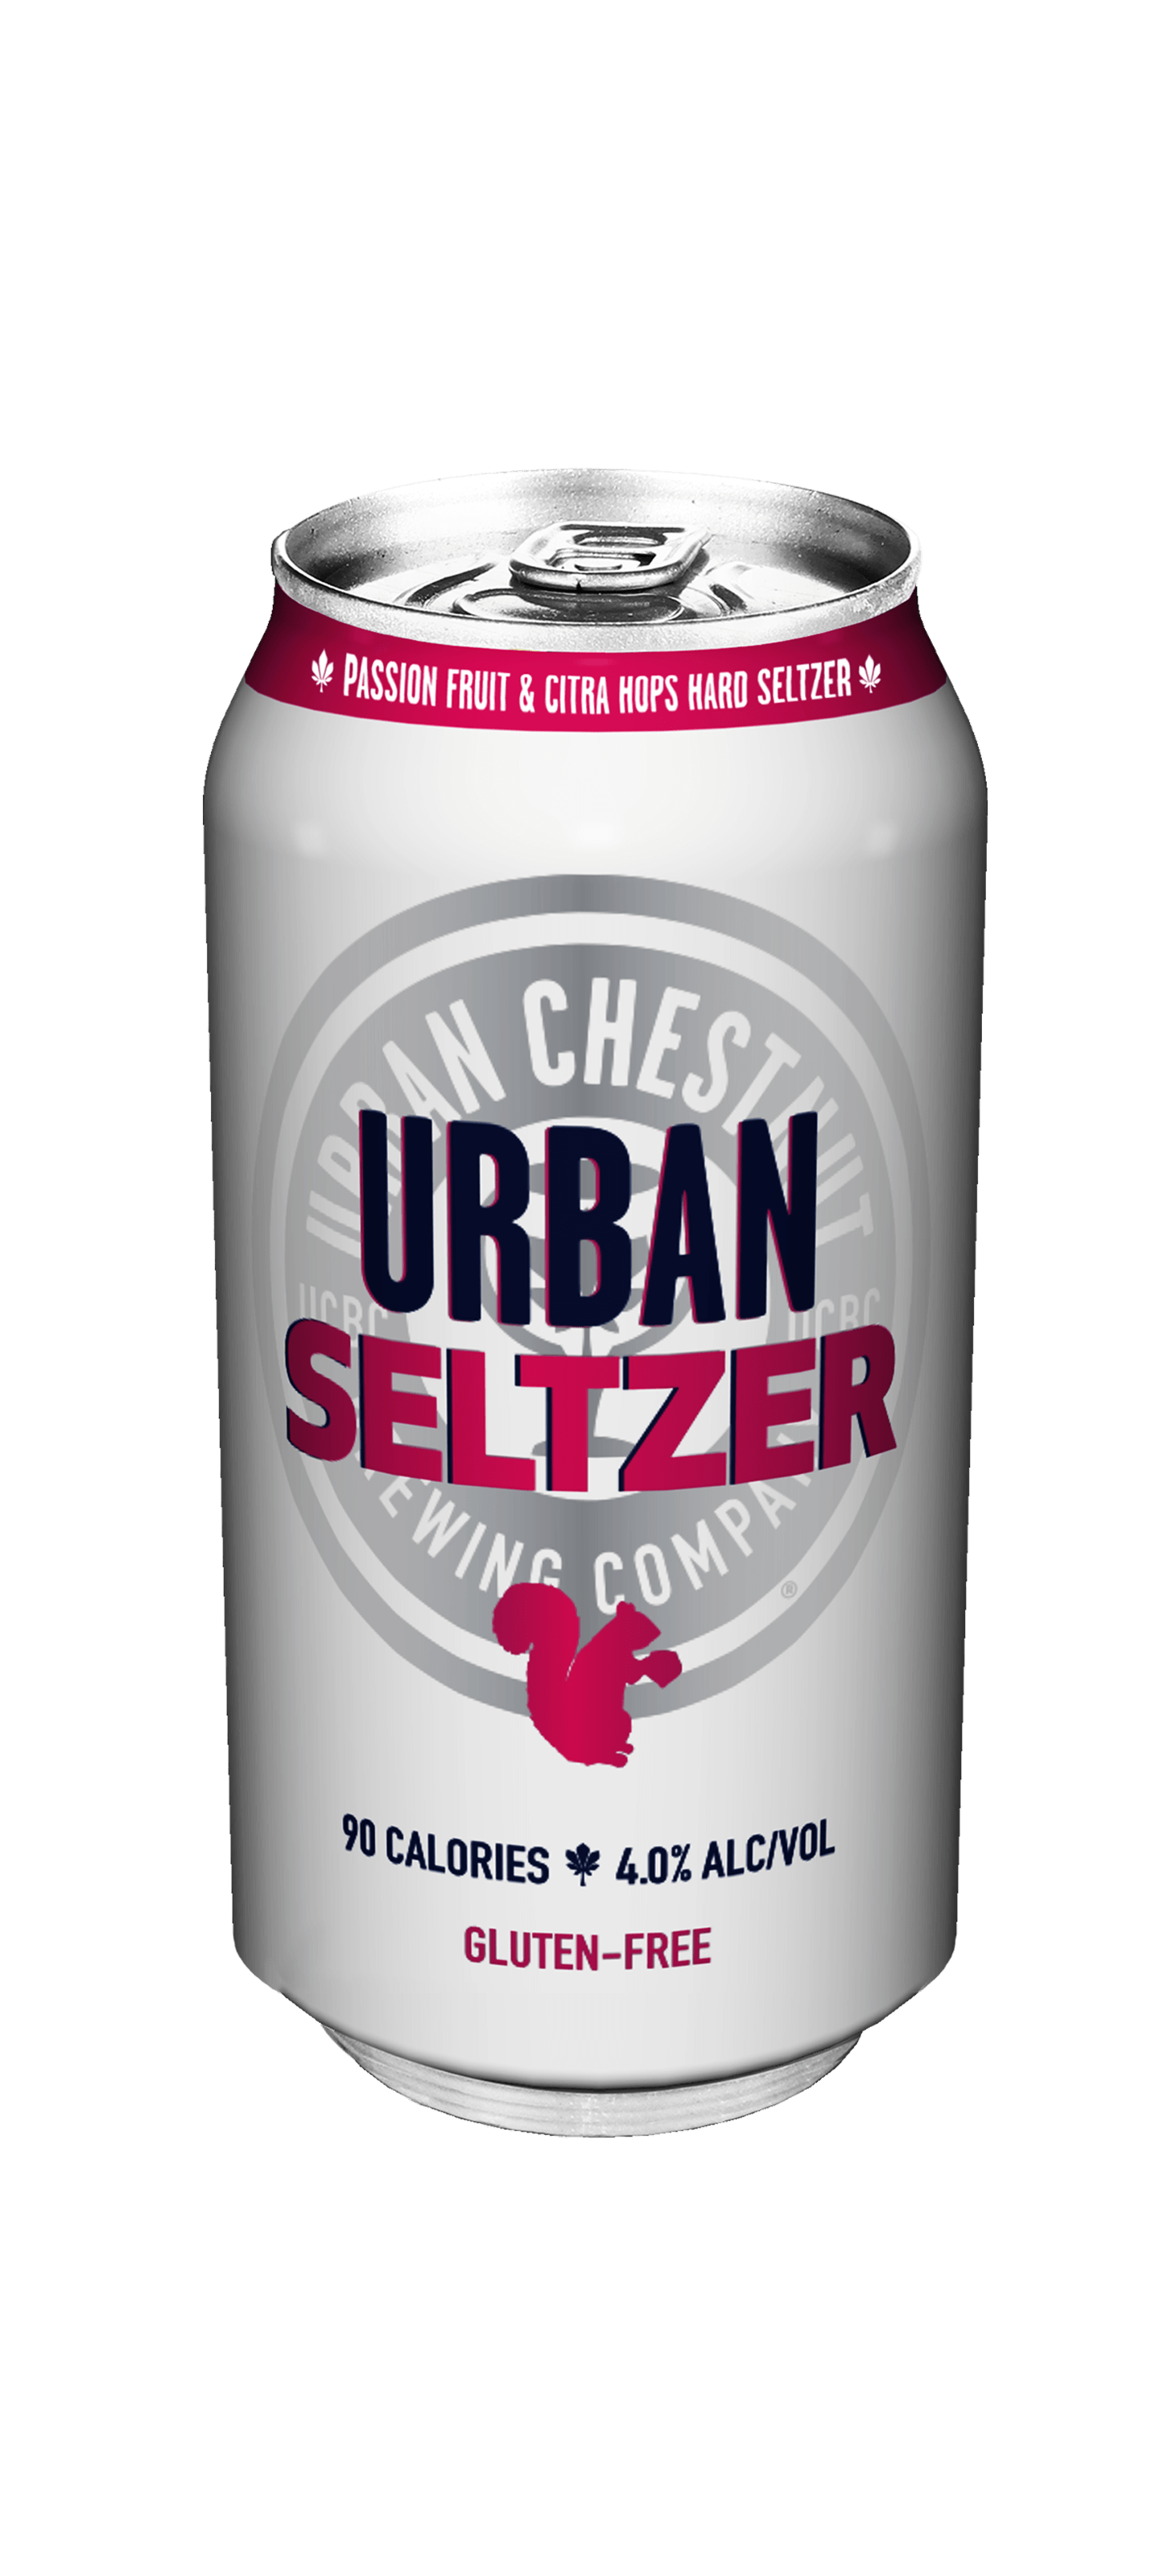 Urban Seltzer - Passion Fruit and Citra Hops